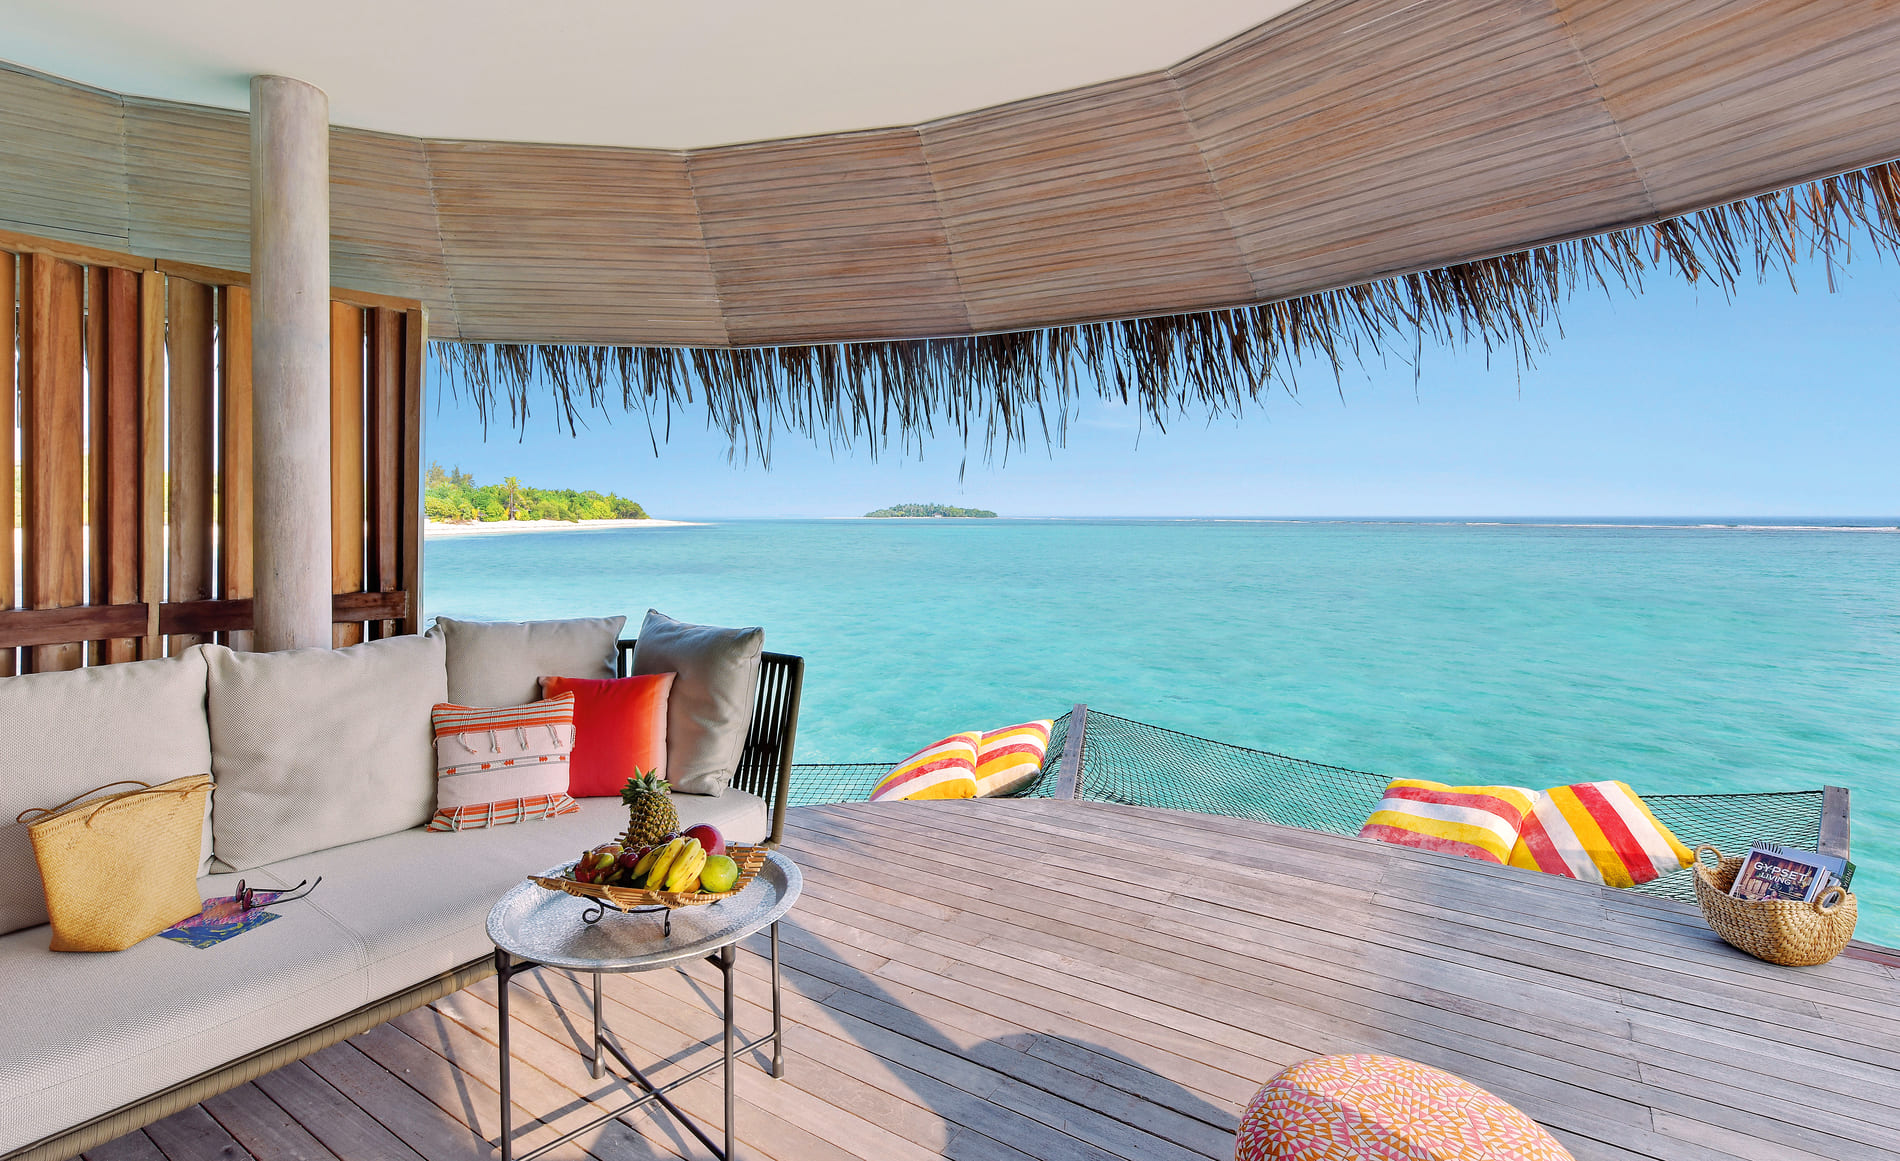 Luxury hotel Kanuhura Resort & Spa Maldives 5-star private sea view villa